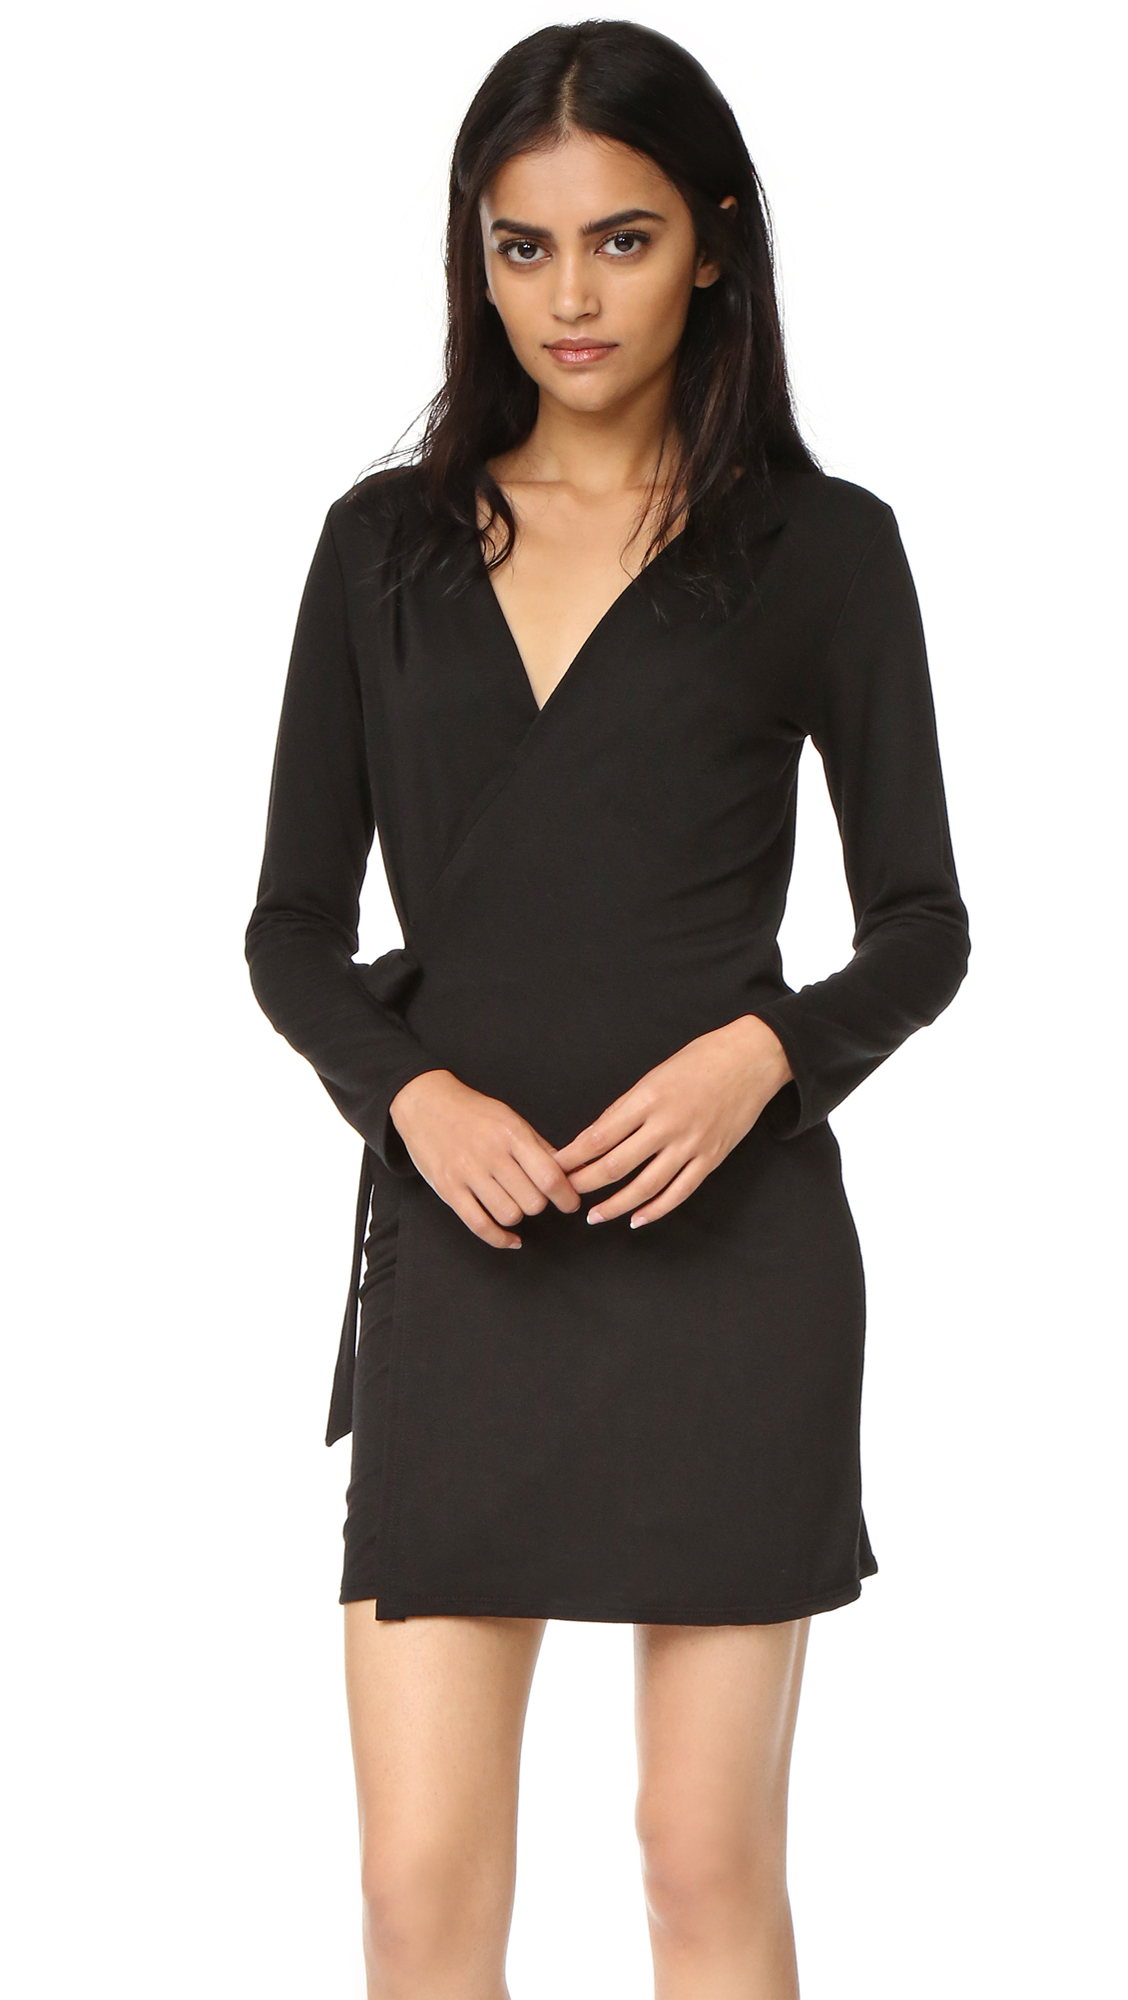 Lanston Wrap Mini Dress - Black at Shopbop